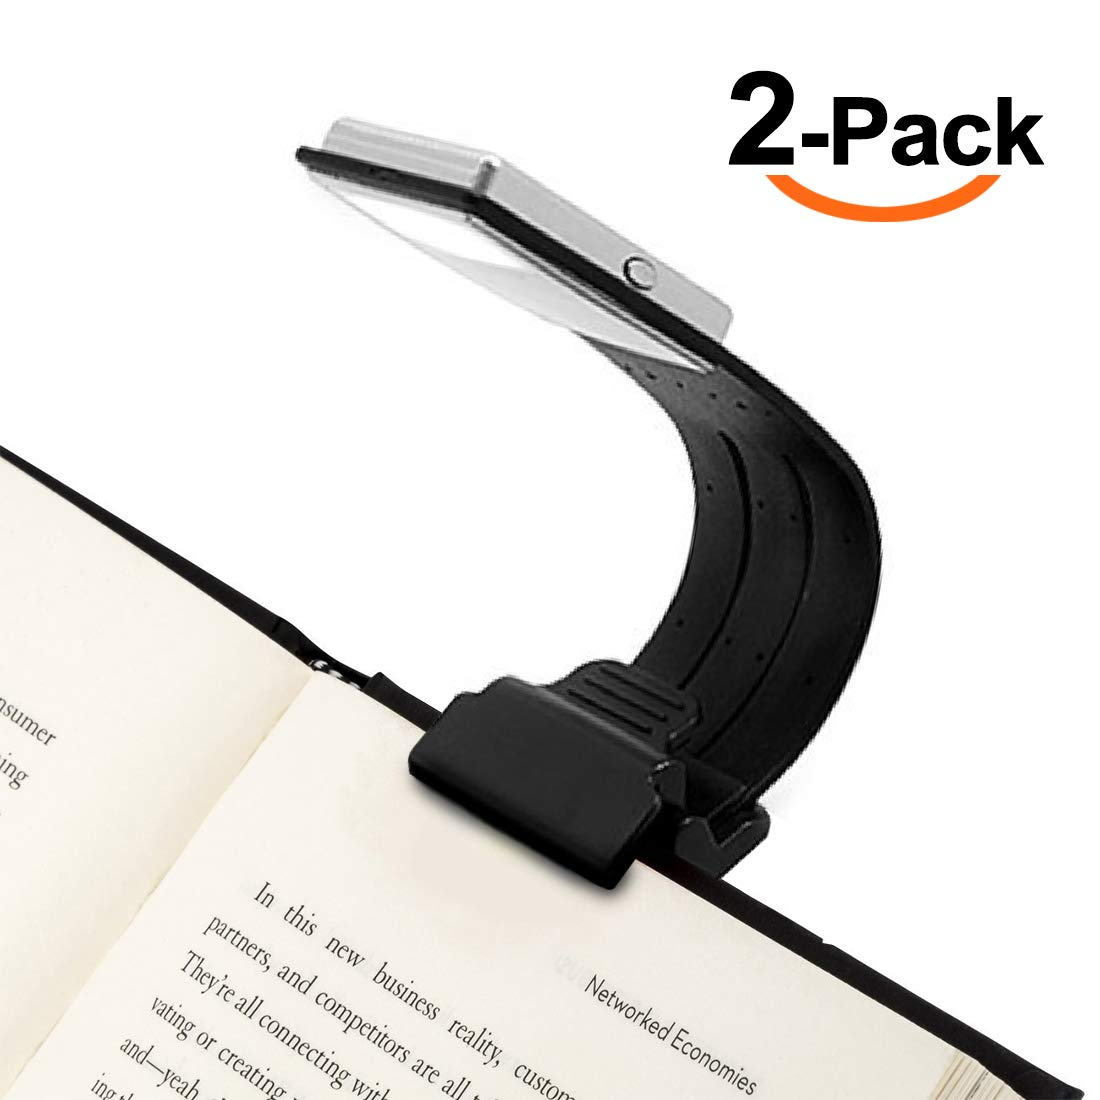 [2-Pack] Clip On Book Light Reading Light USB Rechargeable Reading Lamp Eye Care Double As Bookmark Flexible With 4 Level Dimmable for Book eBook Reading in Bed, Kindle, iPad(Black)